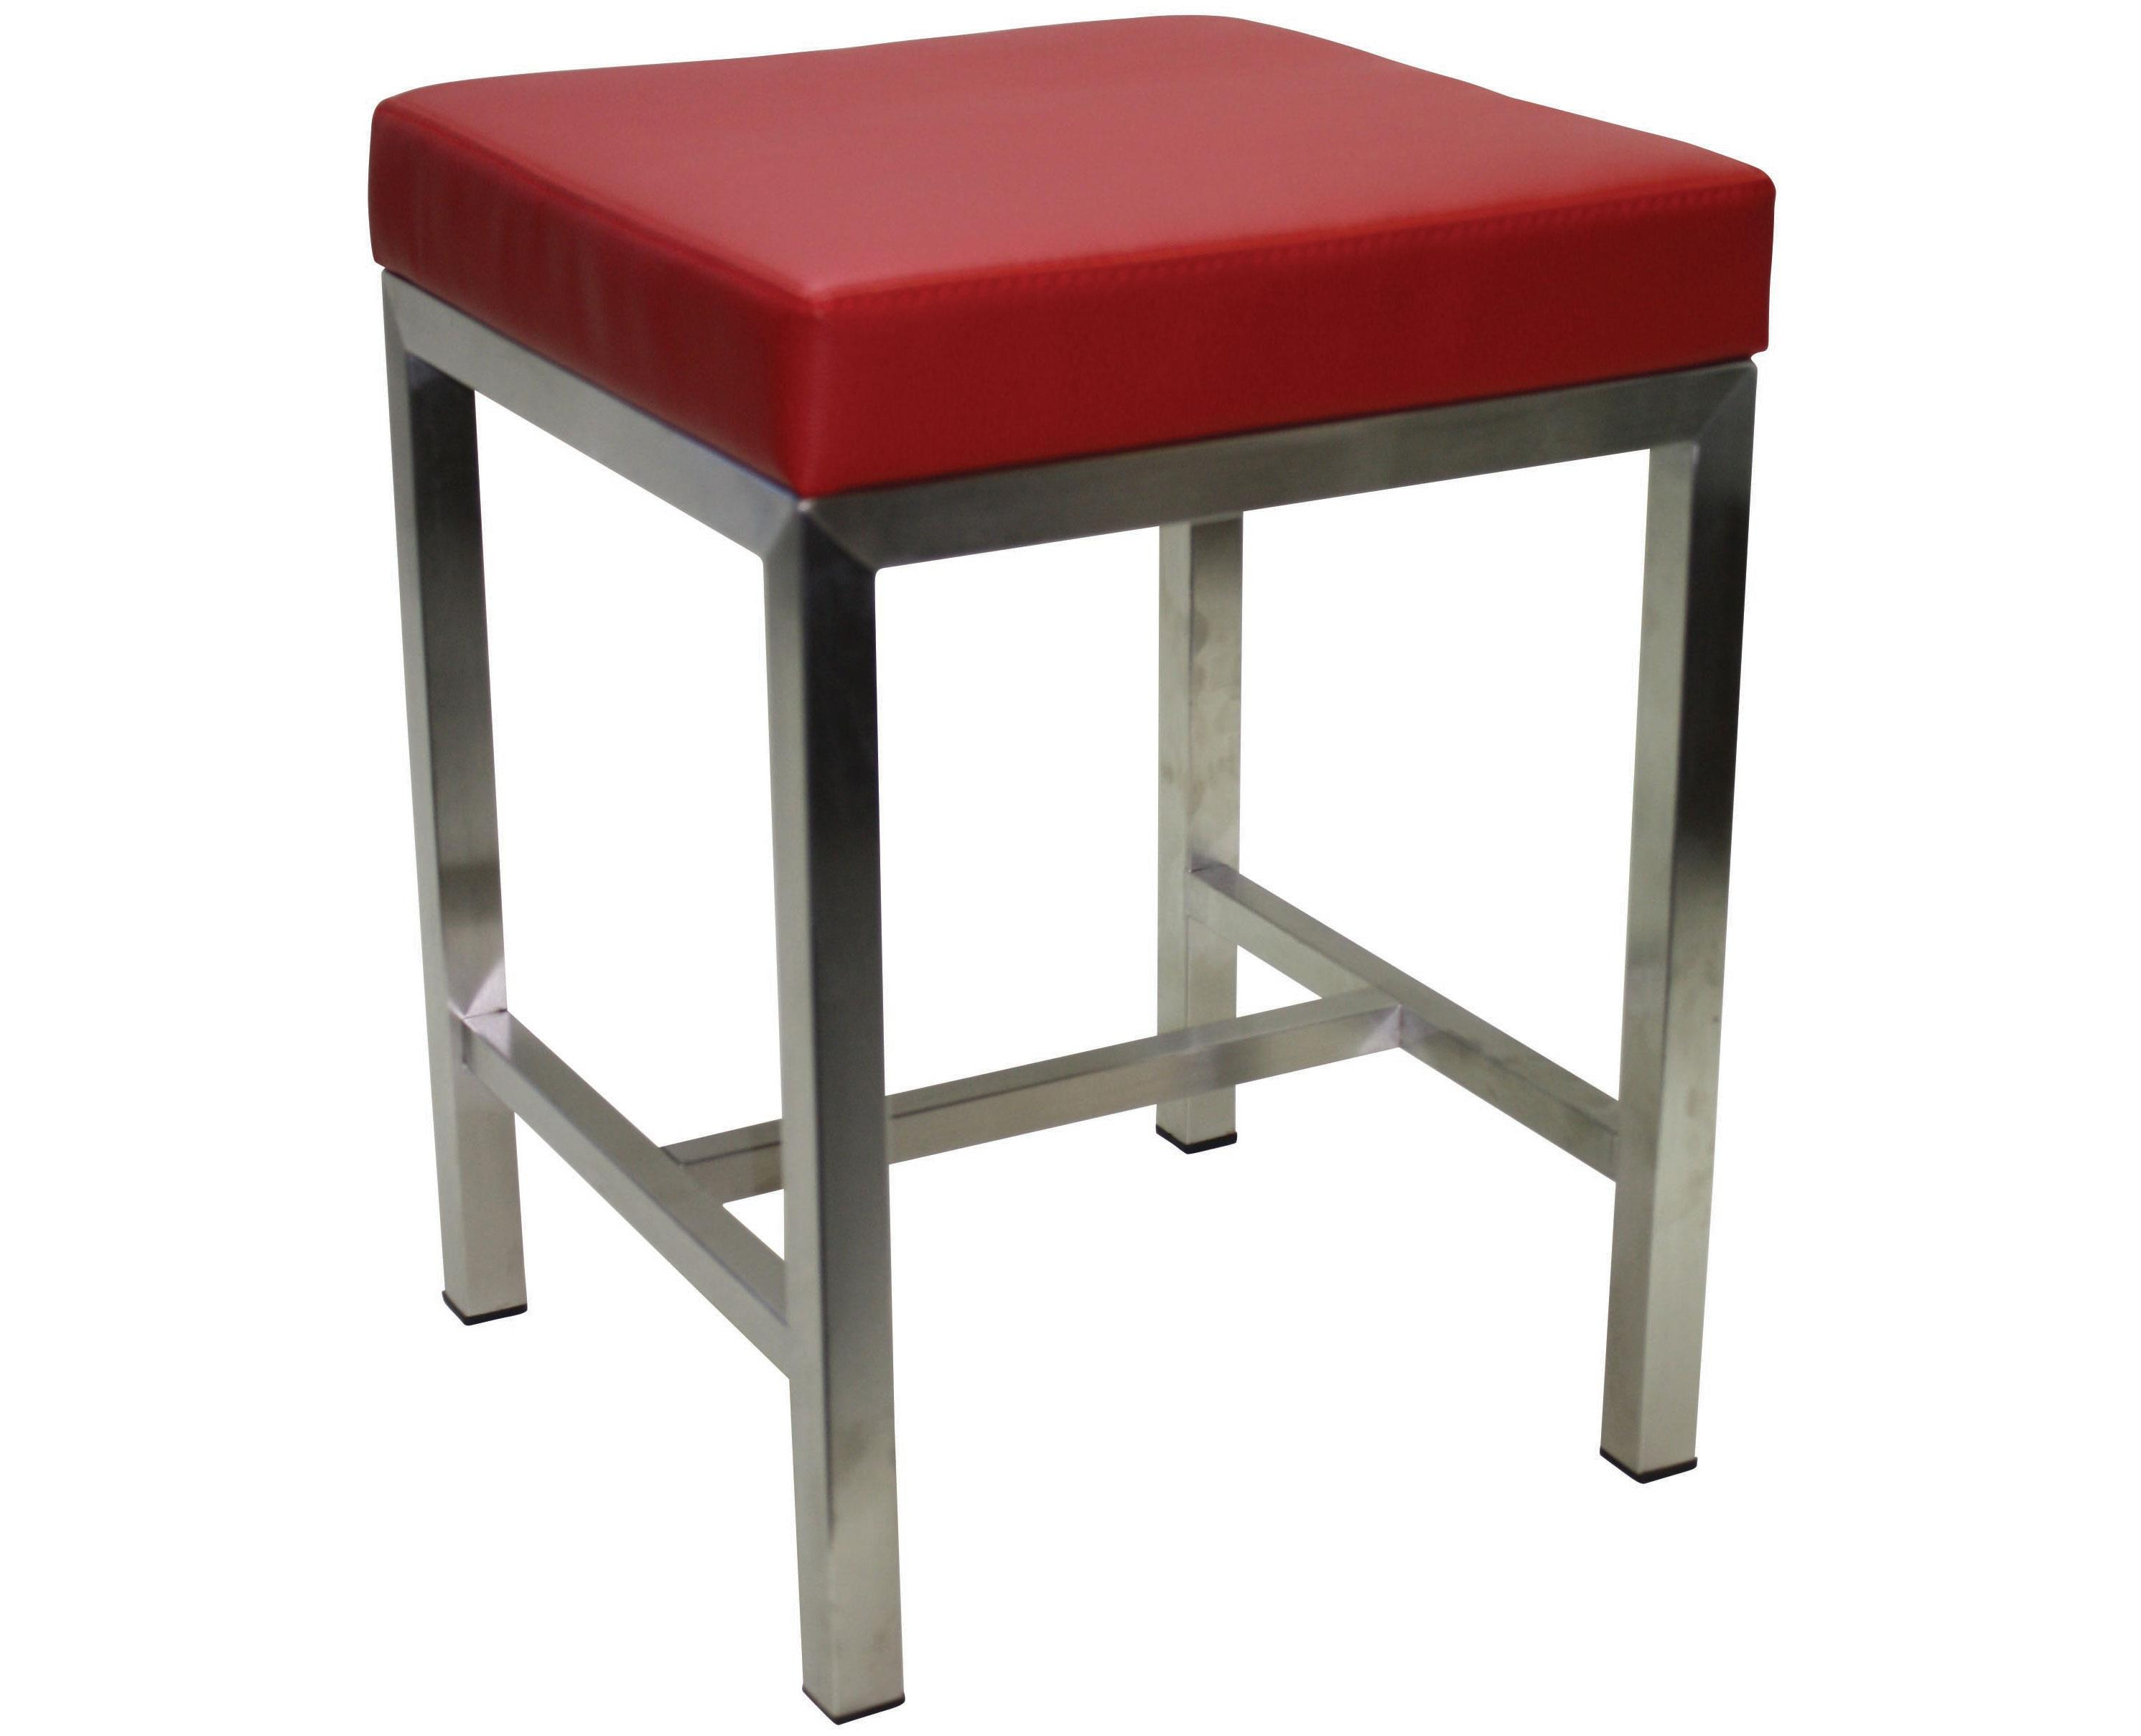 Cube Low Bar Stool Furniture For Public Spaces Street